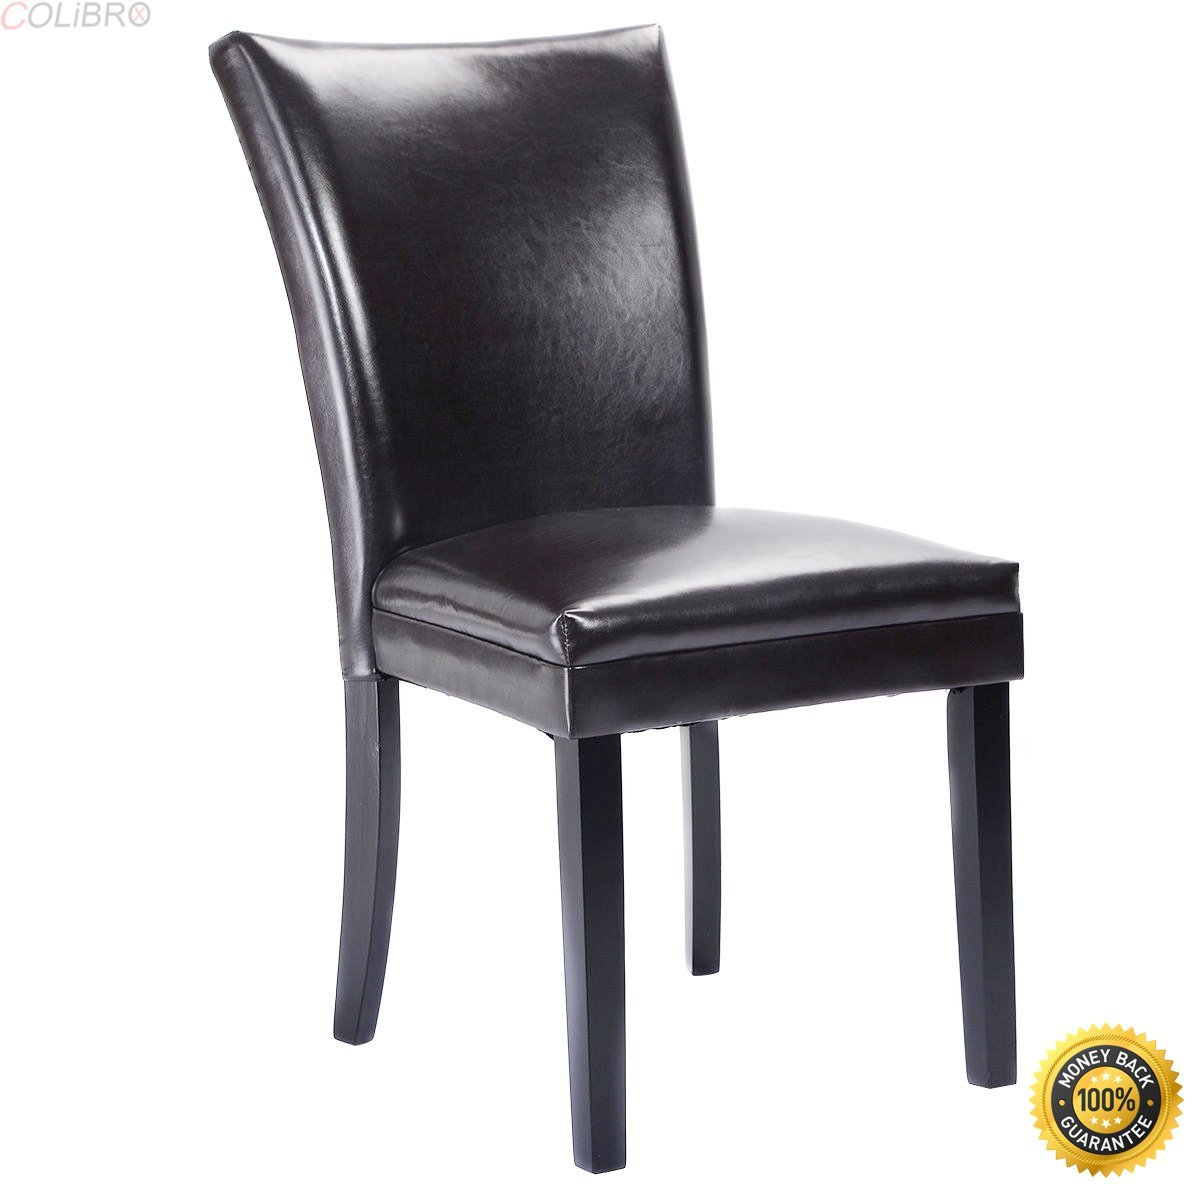 8623e4a673b1 Get Quotations · COLIBROX--Set of 2 Elegant Design PU Leather Accent Dining  Chairs Modern Home Furniture